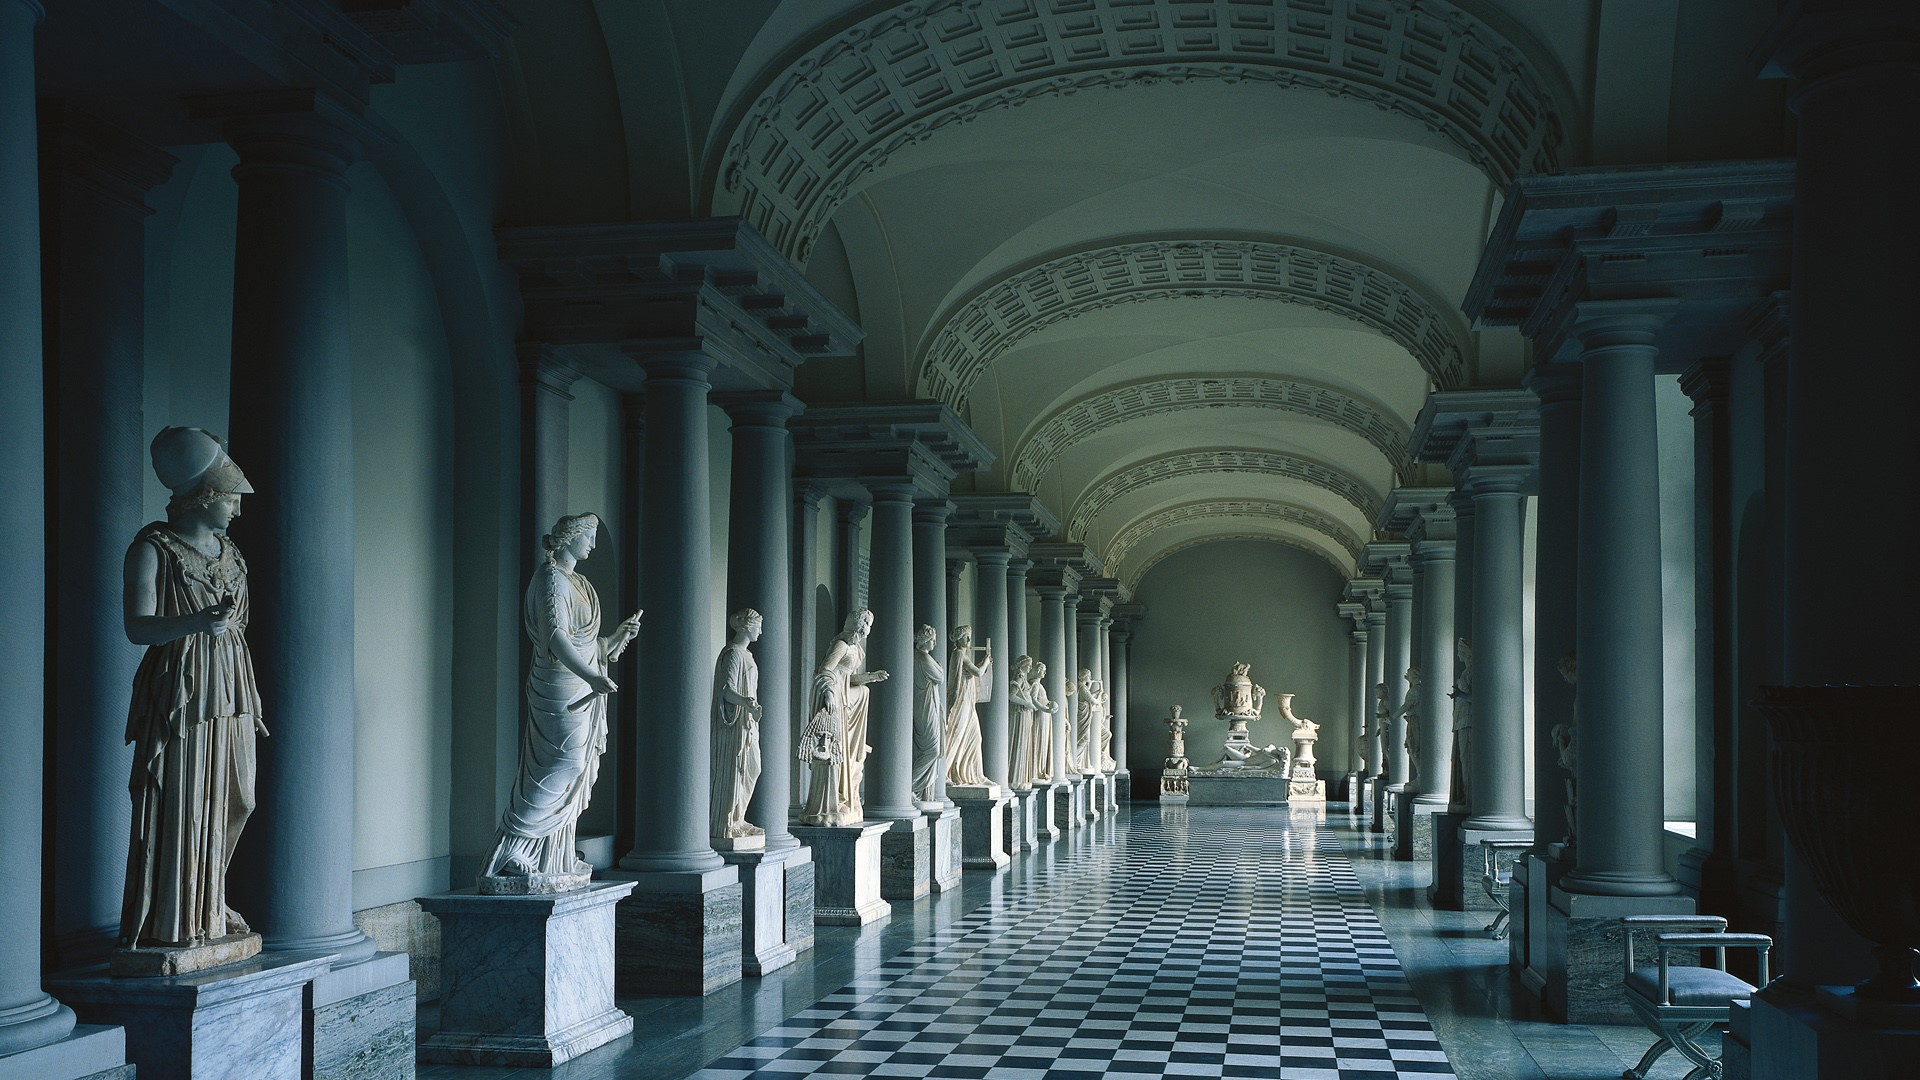 Colonnade in gustav iiis museum of antiquities in stockholm palace sweden